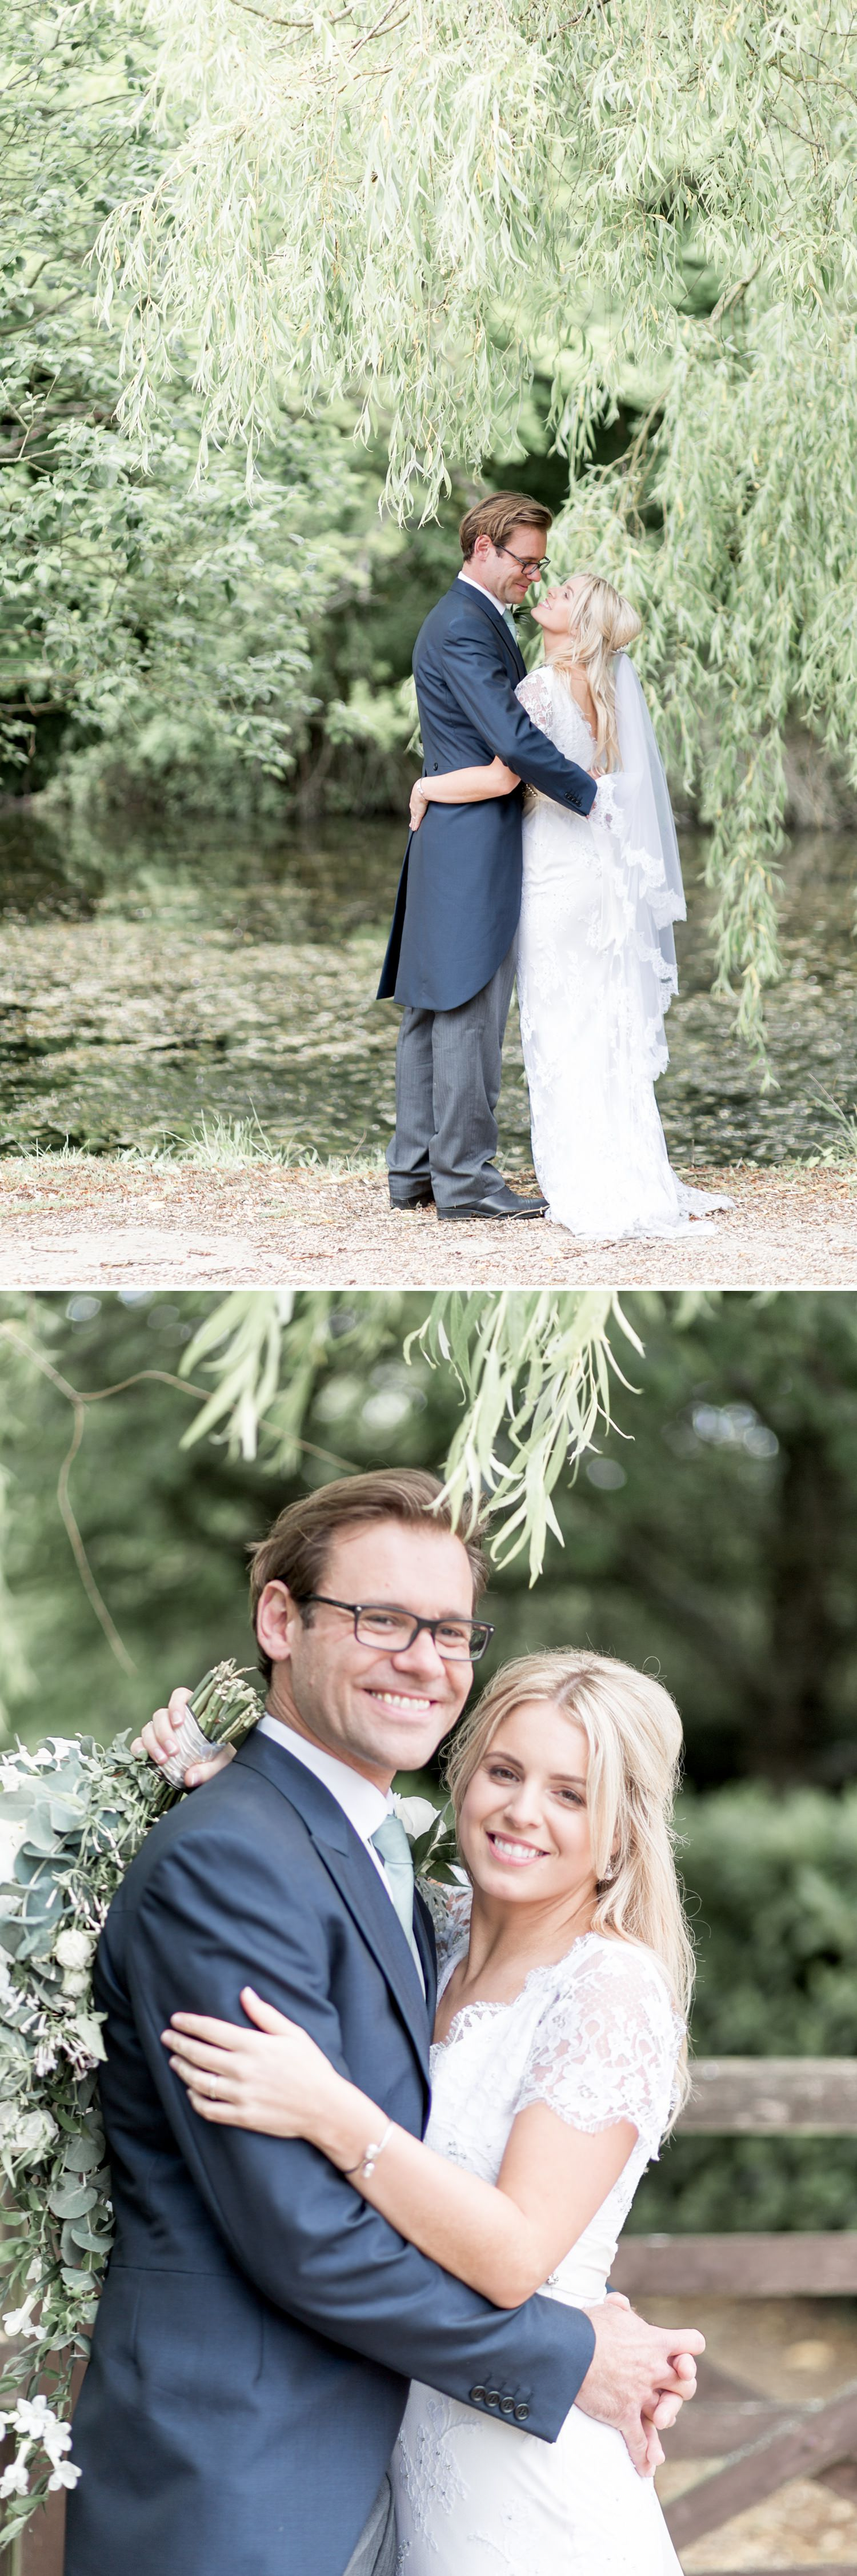 Emily & Jonathan's Cambridgeshire wedding - couple posing under weeping willow